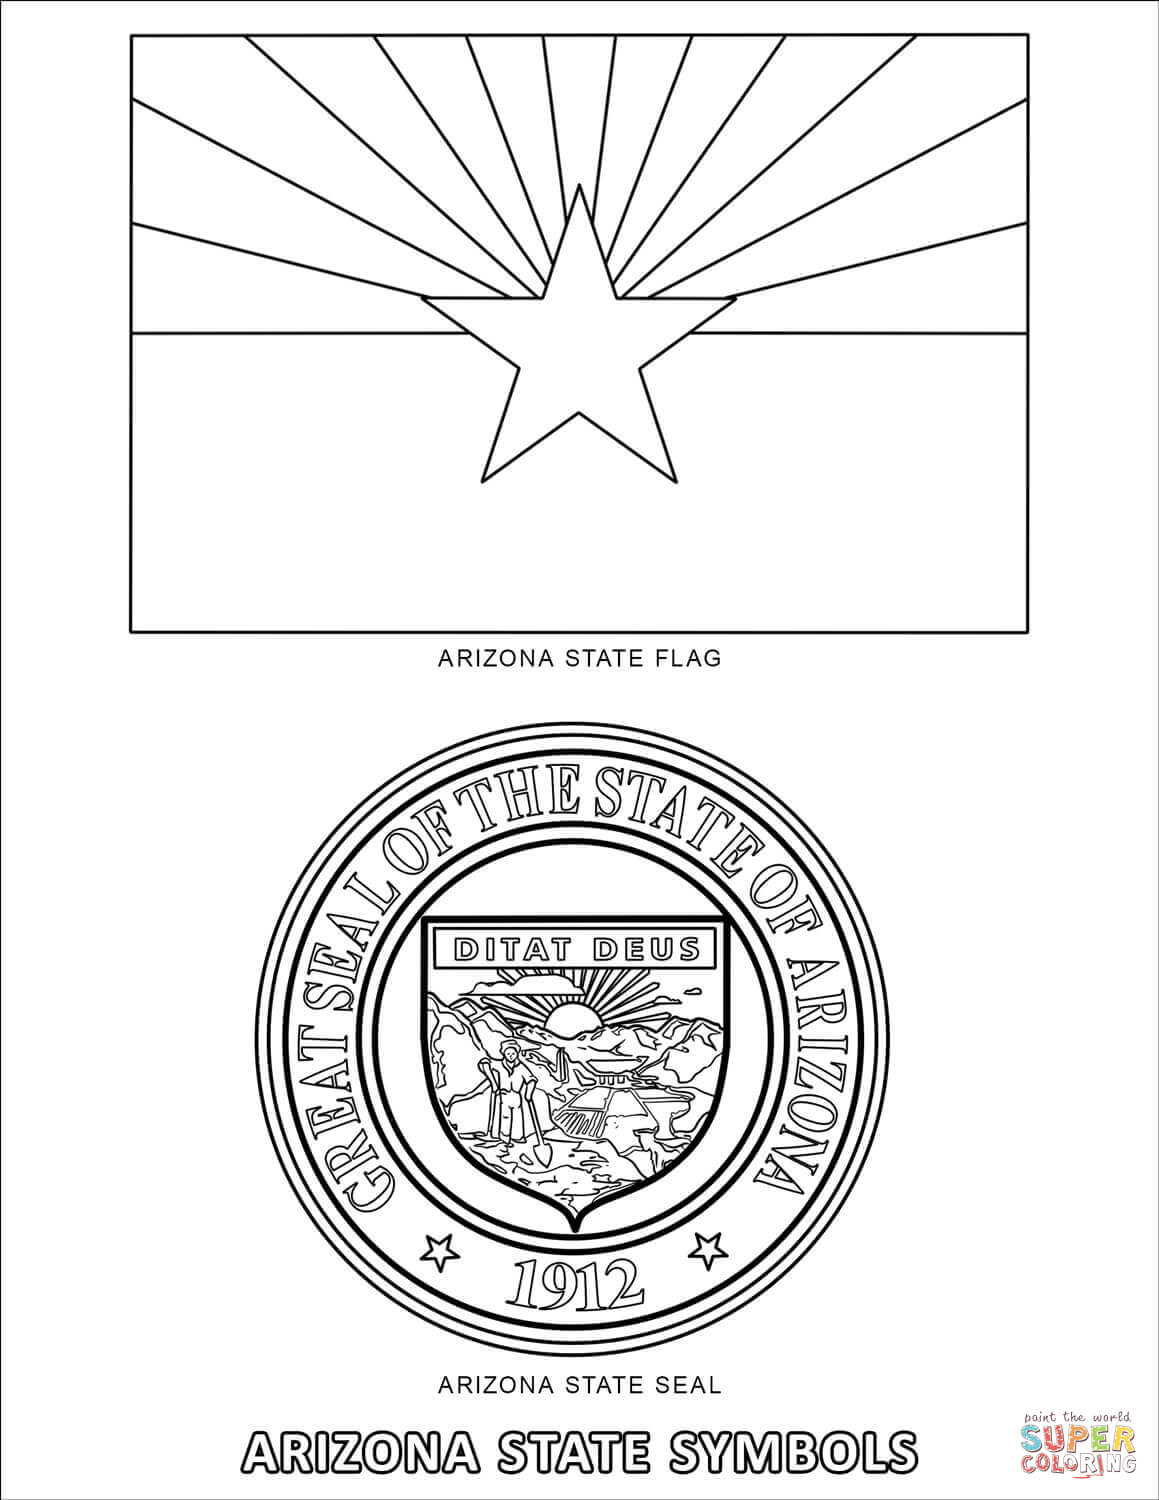 Arizona State Symbols Coloring Page